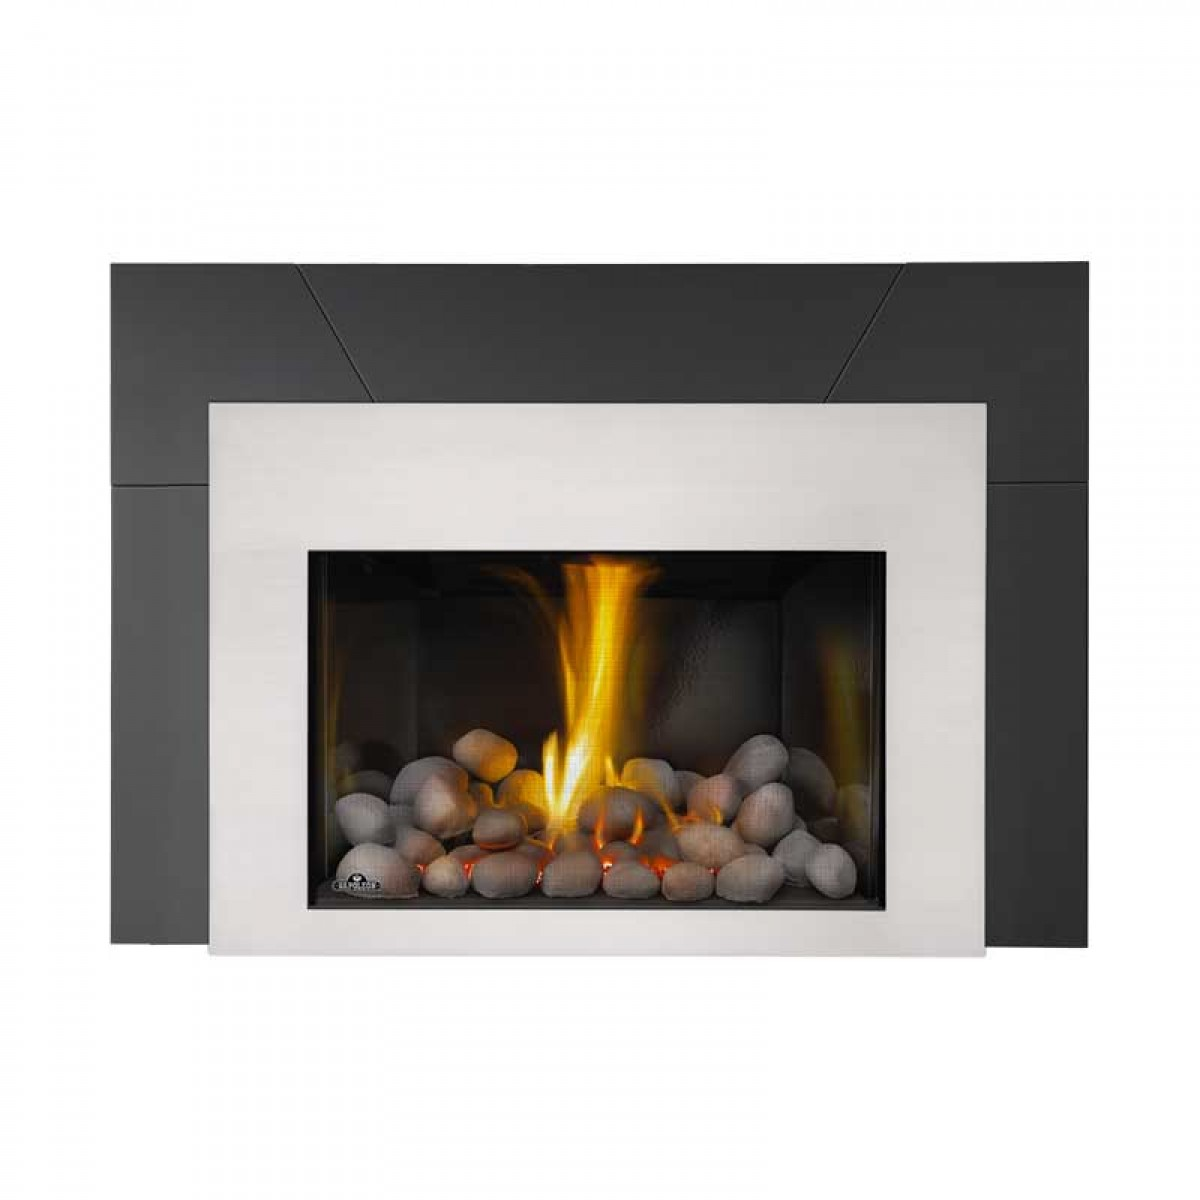 Find discount prices on the Napoleon XIR3NSB Deluxe Natural Gas fireplace insert and other Napoleon products at iBuyfireplaces.com.